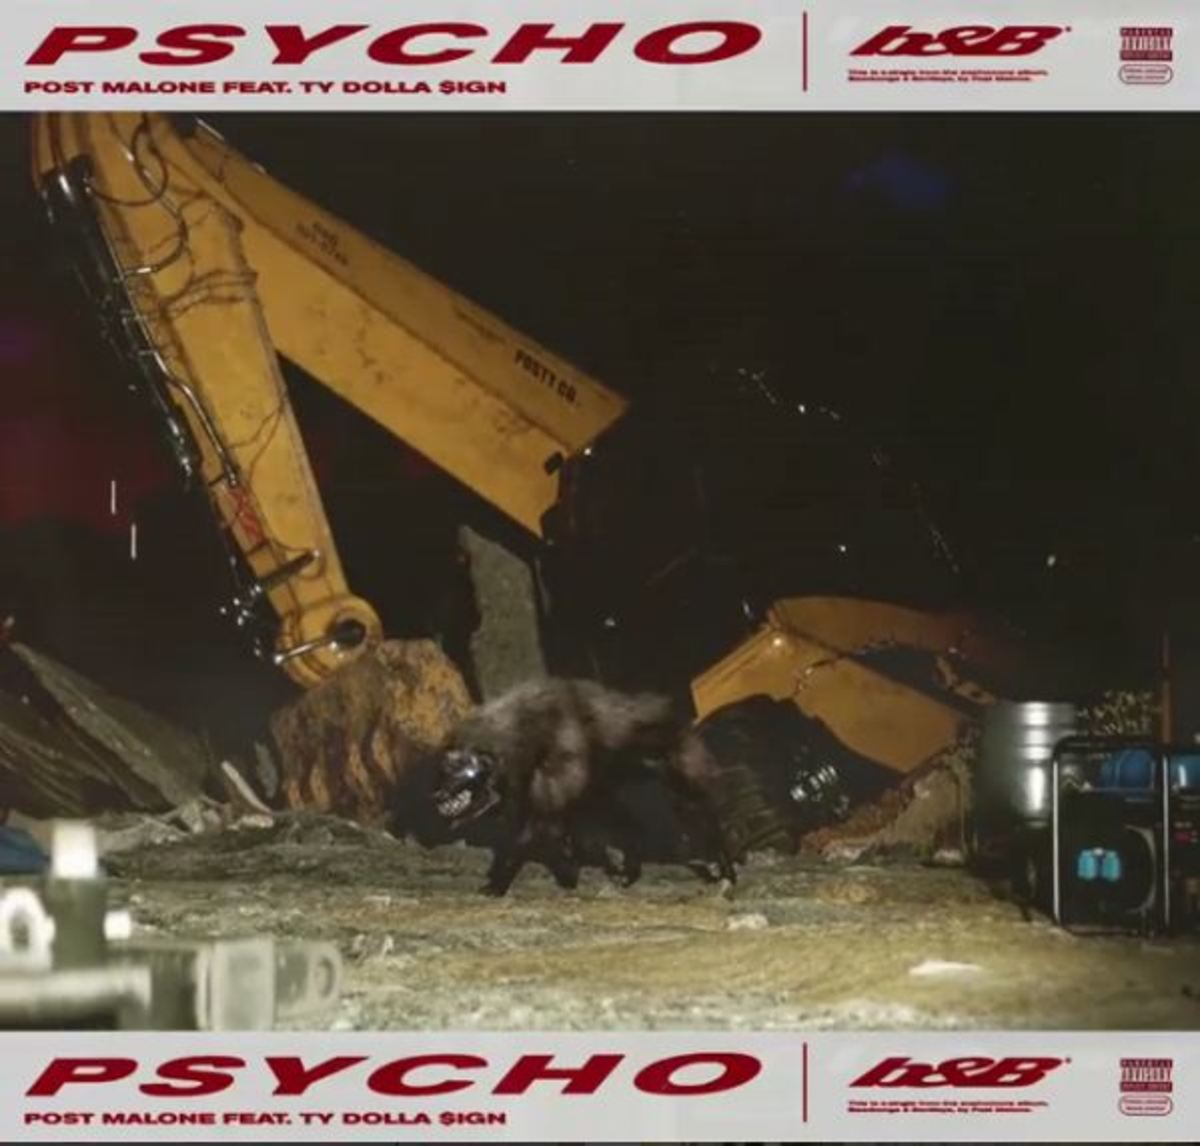 """Psycho"" by Post Malone ft. Ty Dolla $ign"